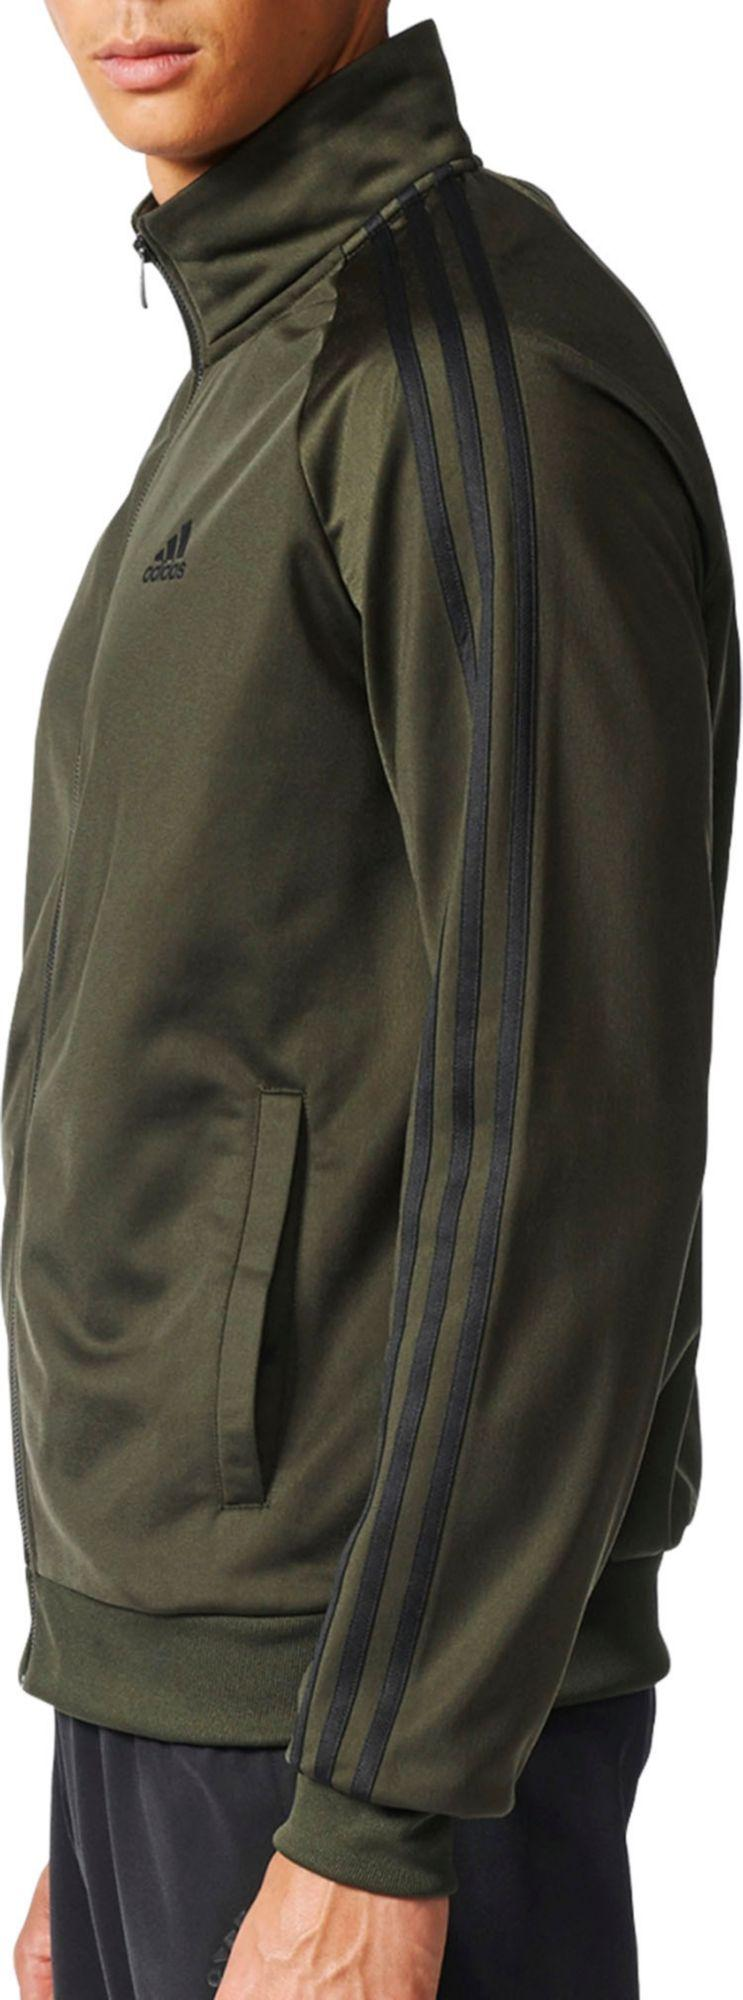 573ede1226a2 Lyst - adidas Essentials 3-stripes Track Jacket in Green for Men